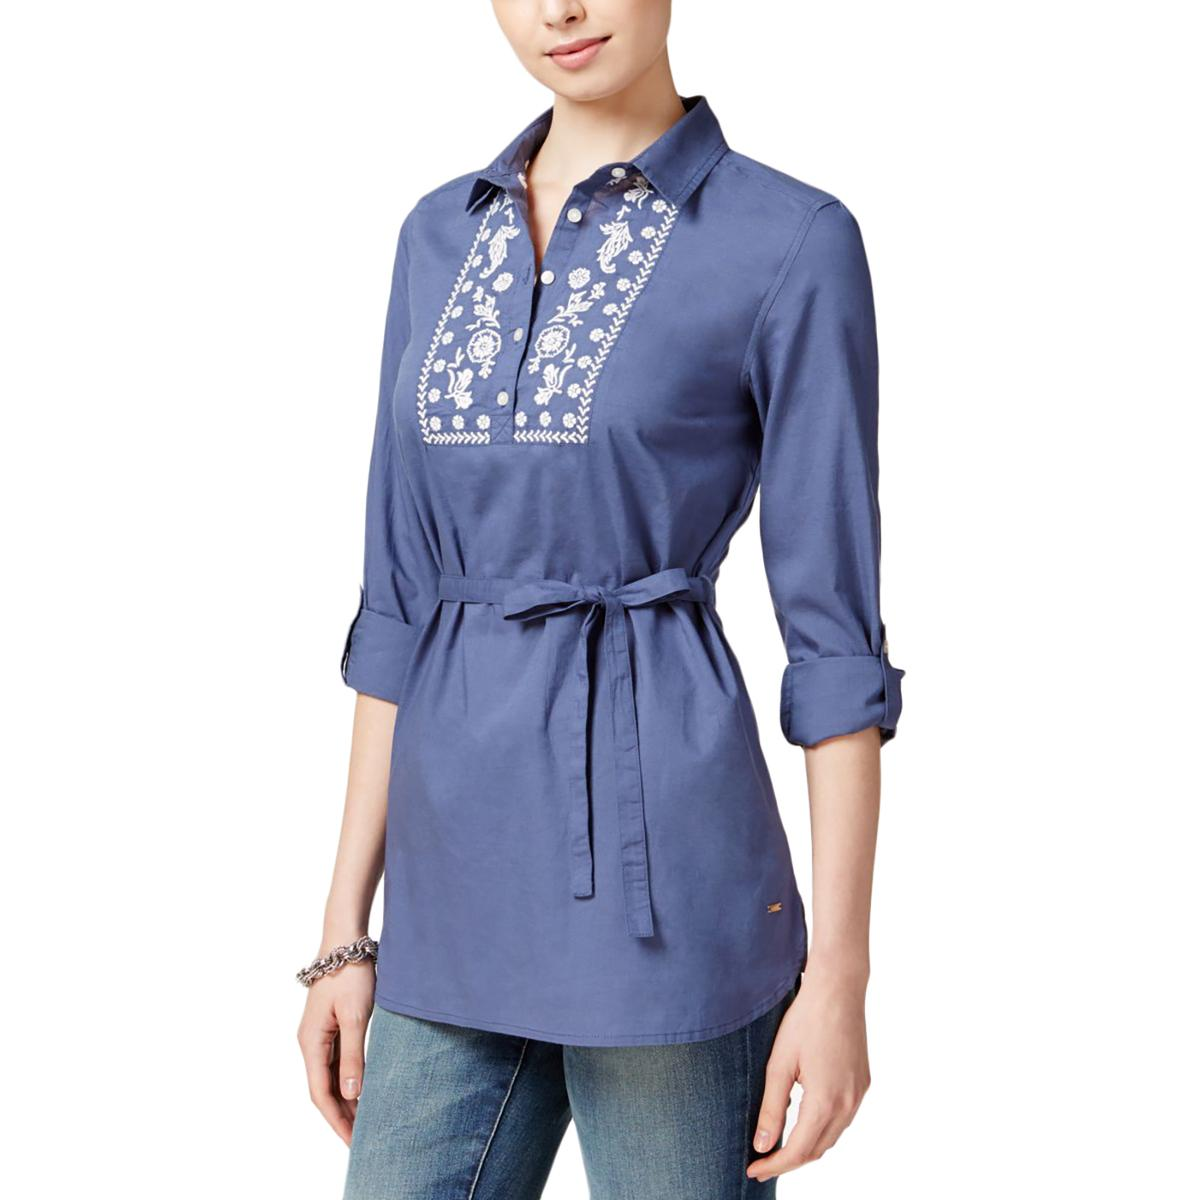 Tommy-Hilfiger-9008-Womens-Embroidered-Adjustable-Sleeves-Blouse-Shirt-BHFO